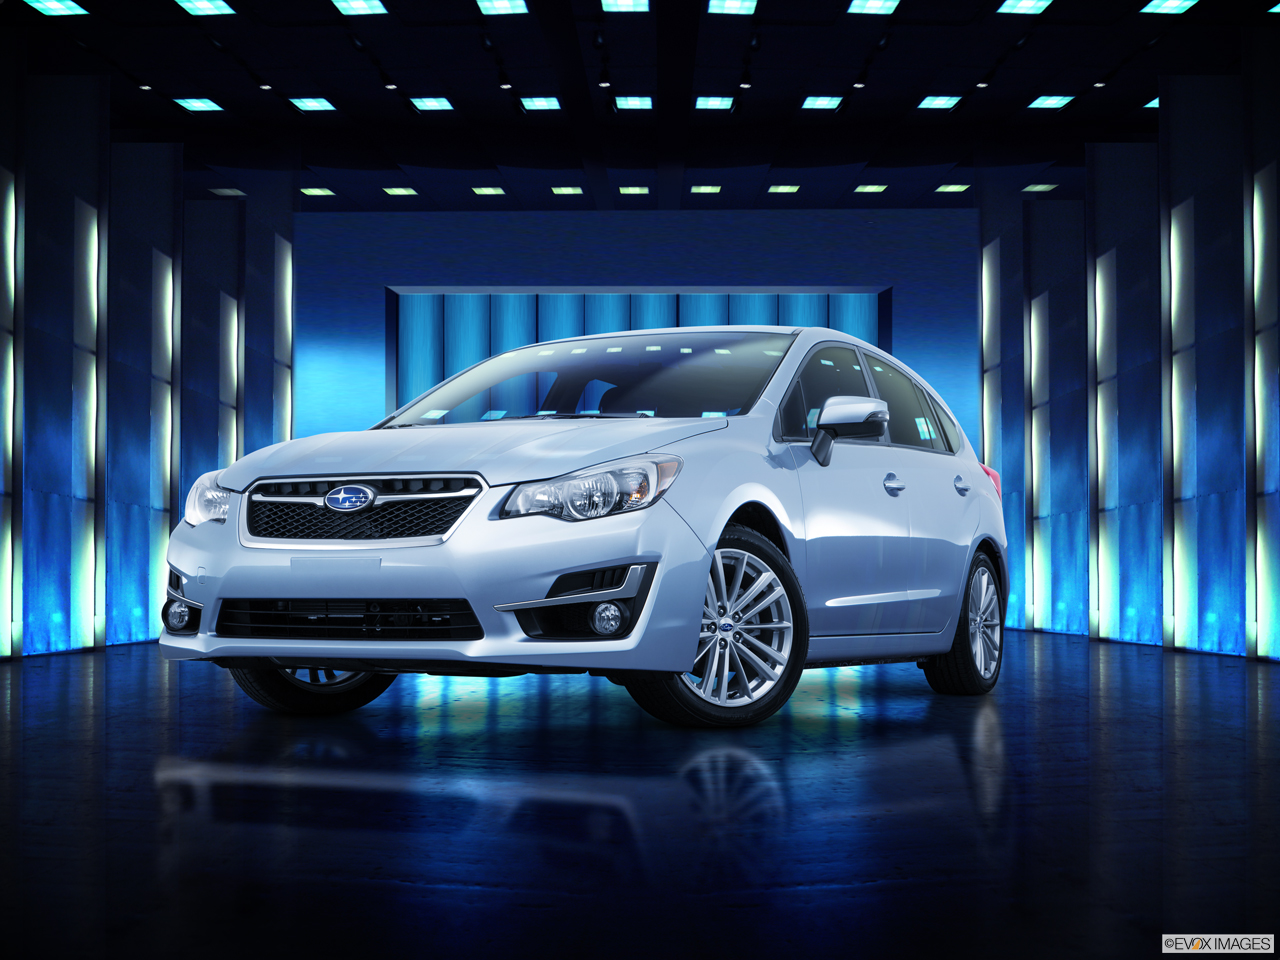 Exterior View Of 2016 Subaru Impreza in Los Angeles